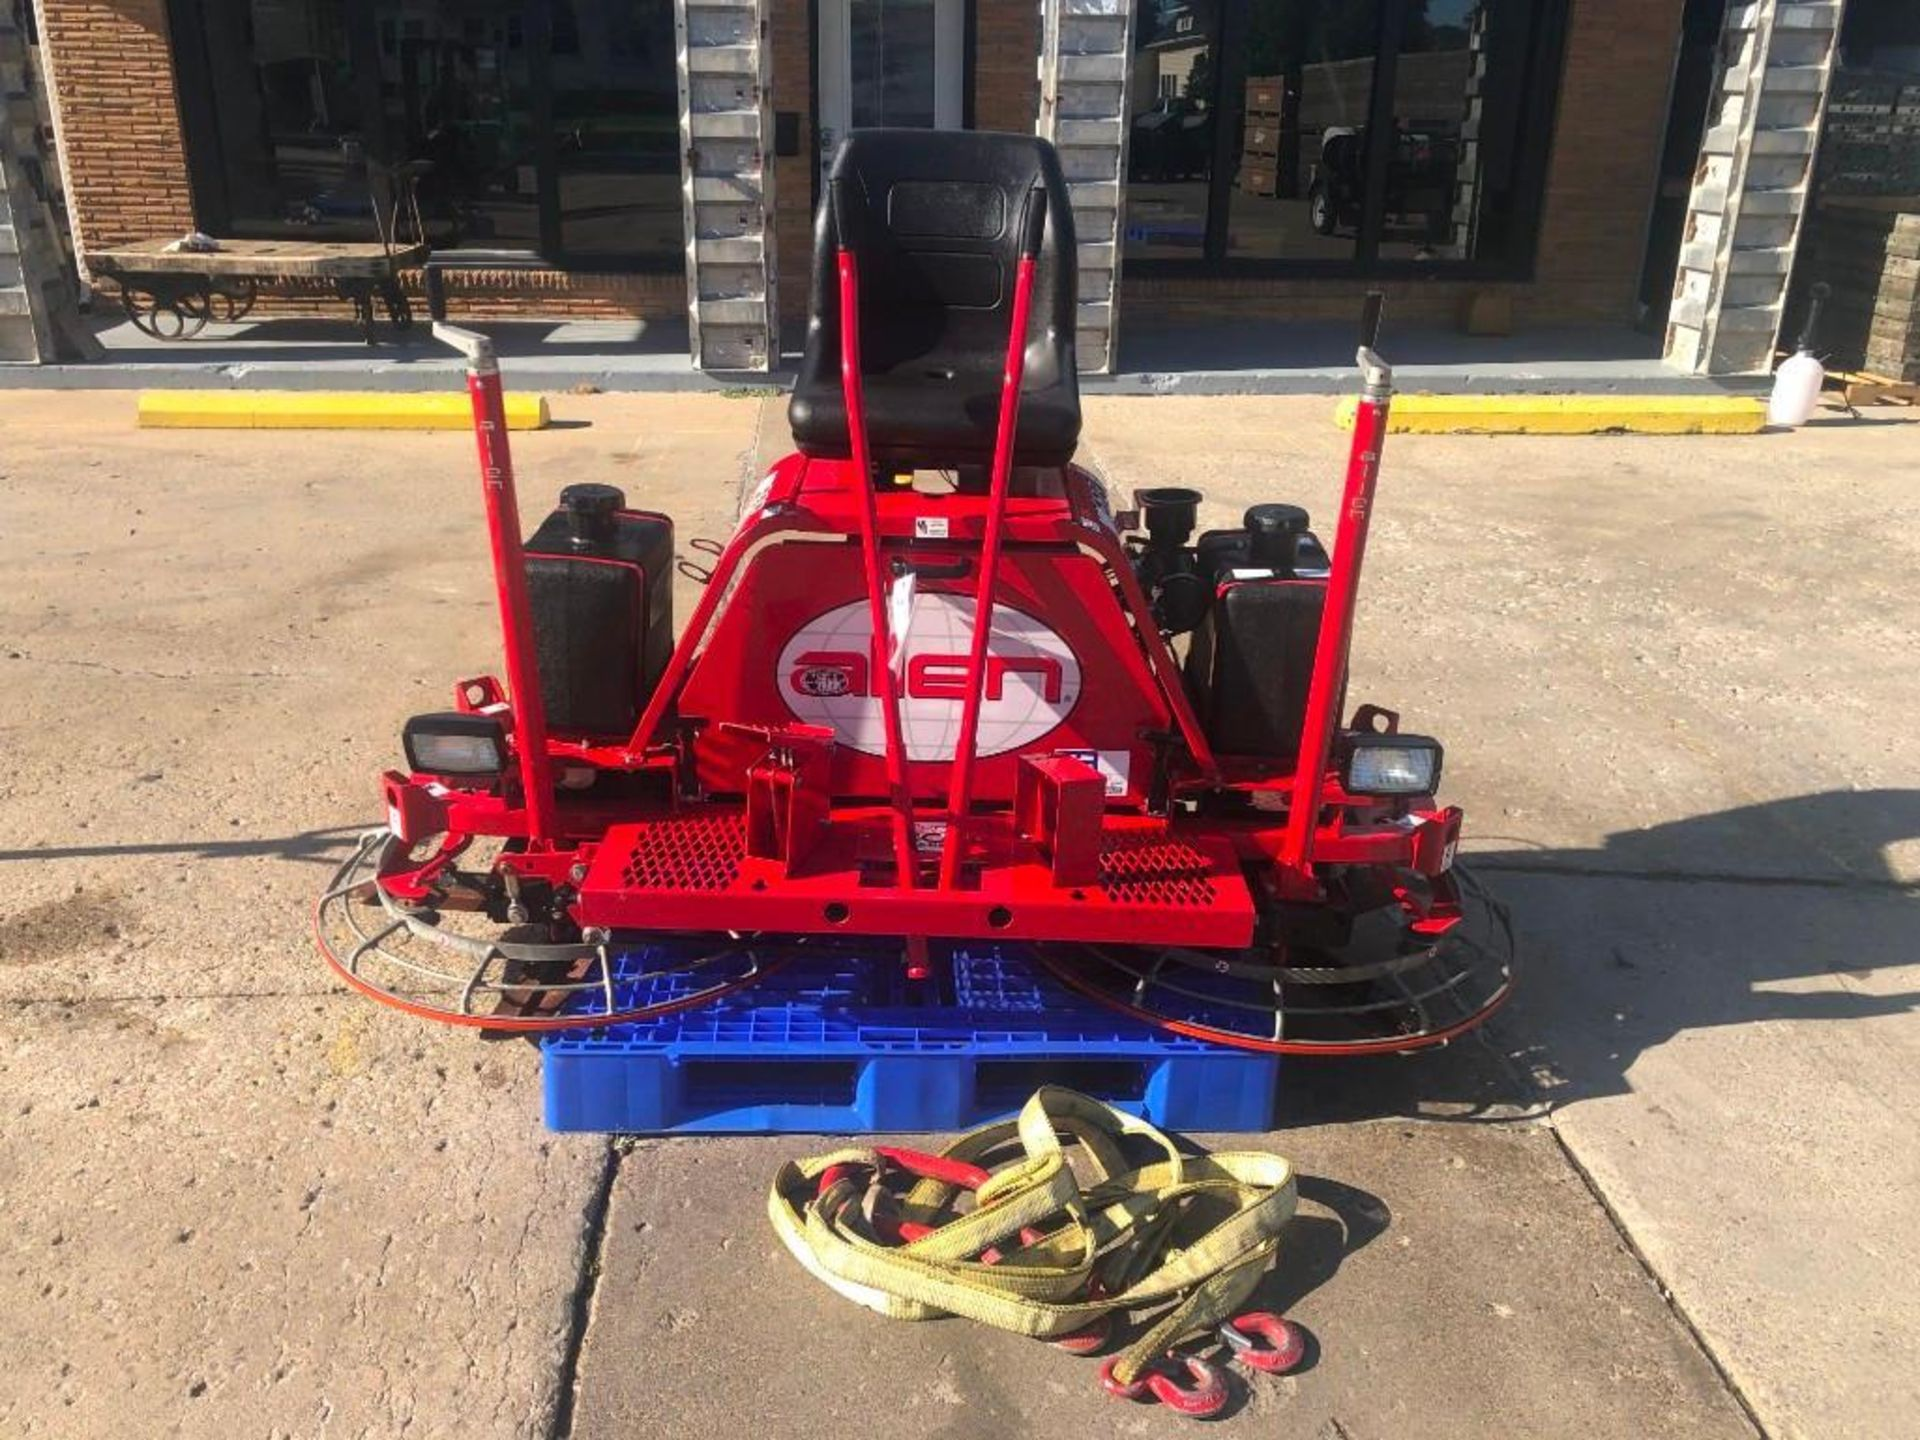 Allen MP235 Edger Riding Trowel, Serial #2350114005, 36.7 Hours, Model MP235. Located at 301 E Henry